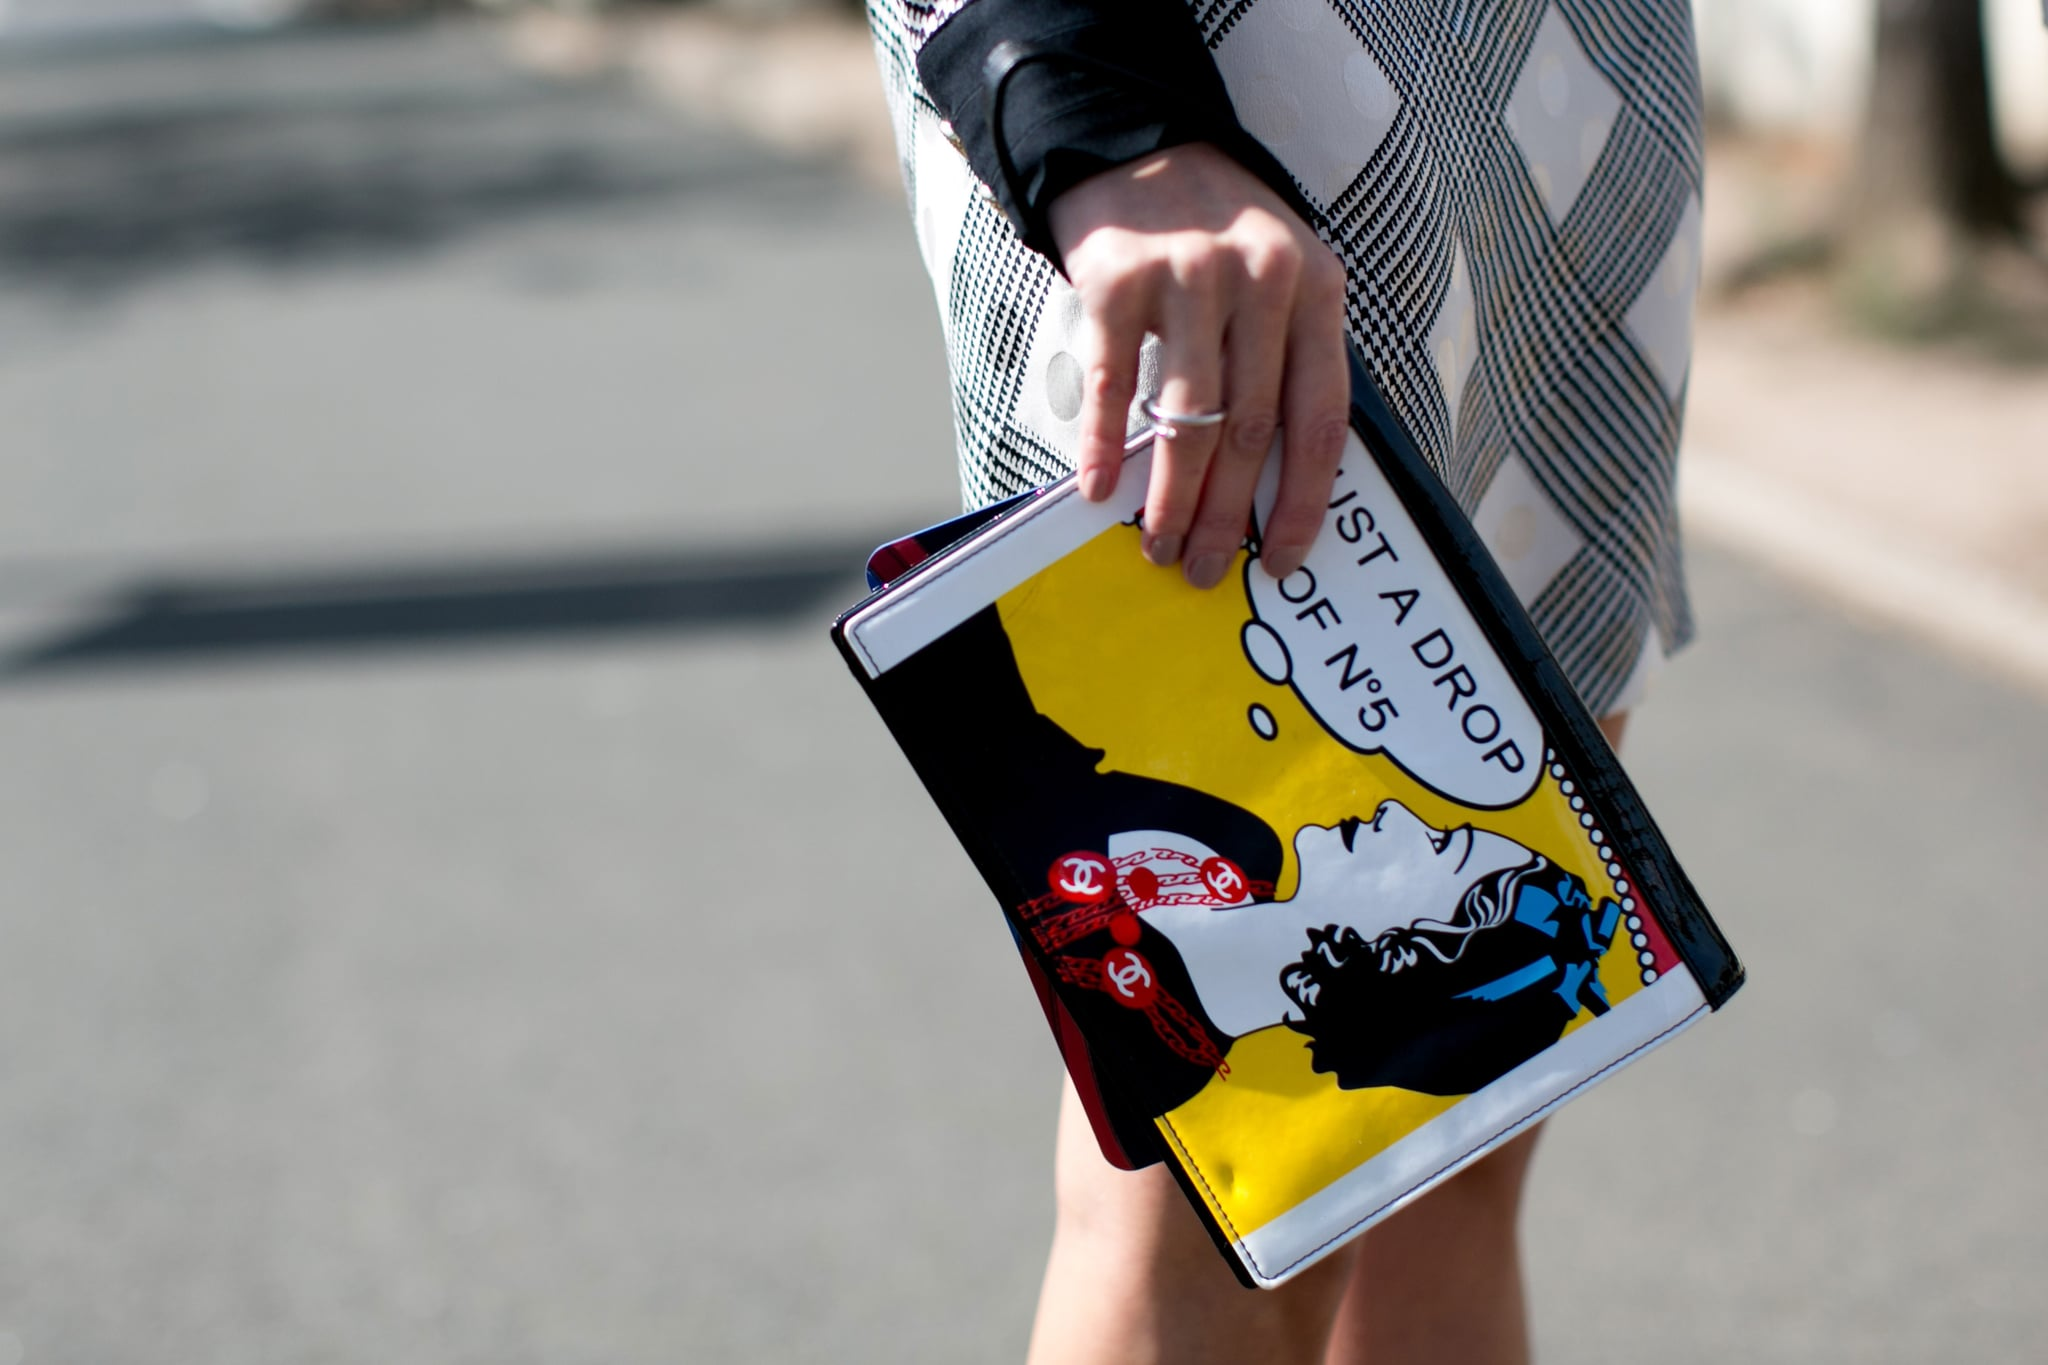 A clutch that does the talking.